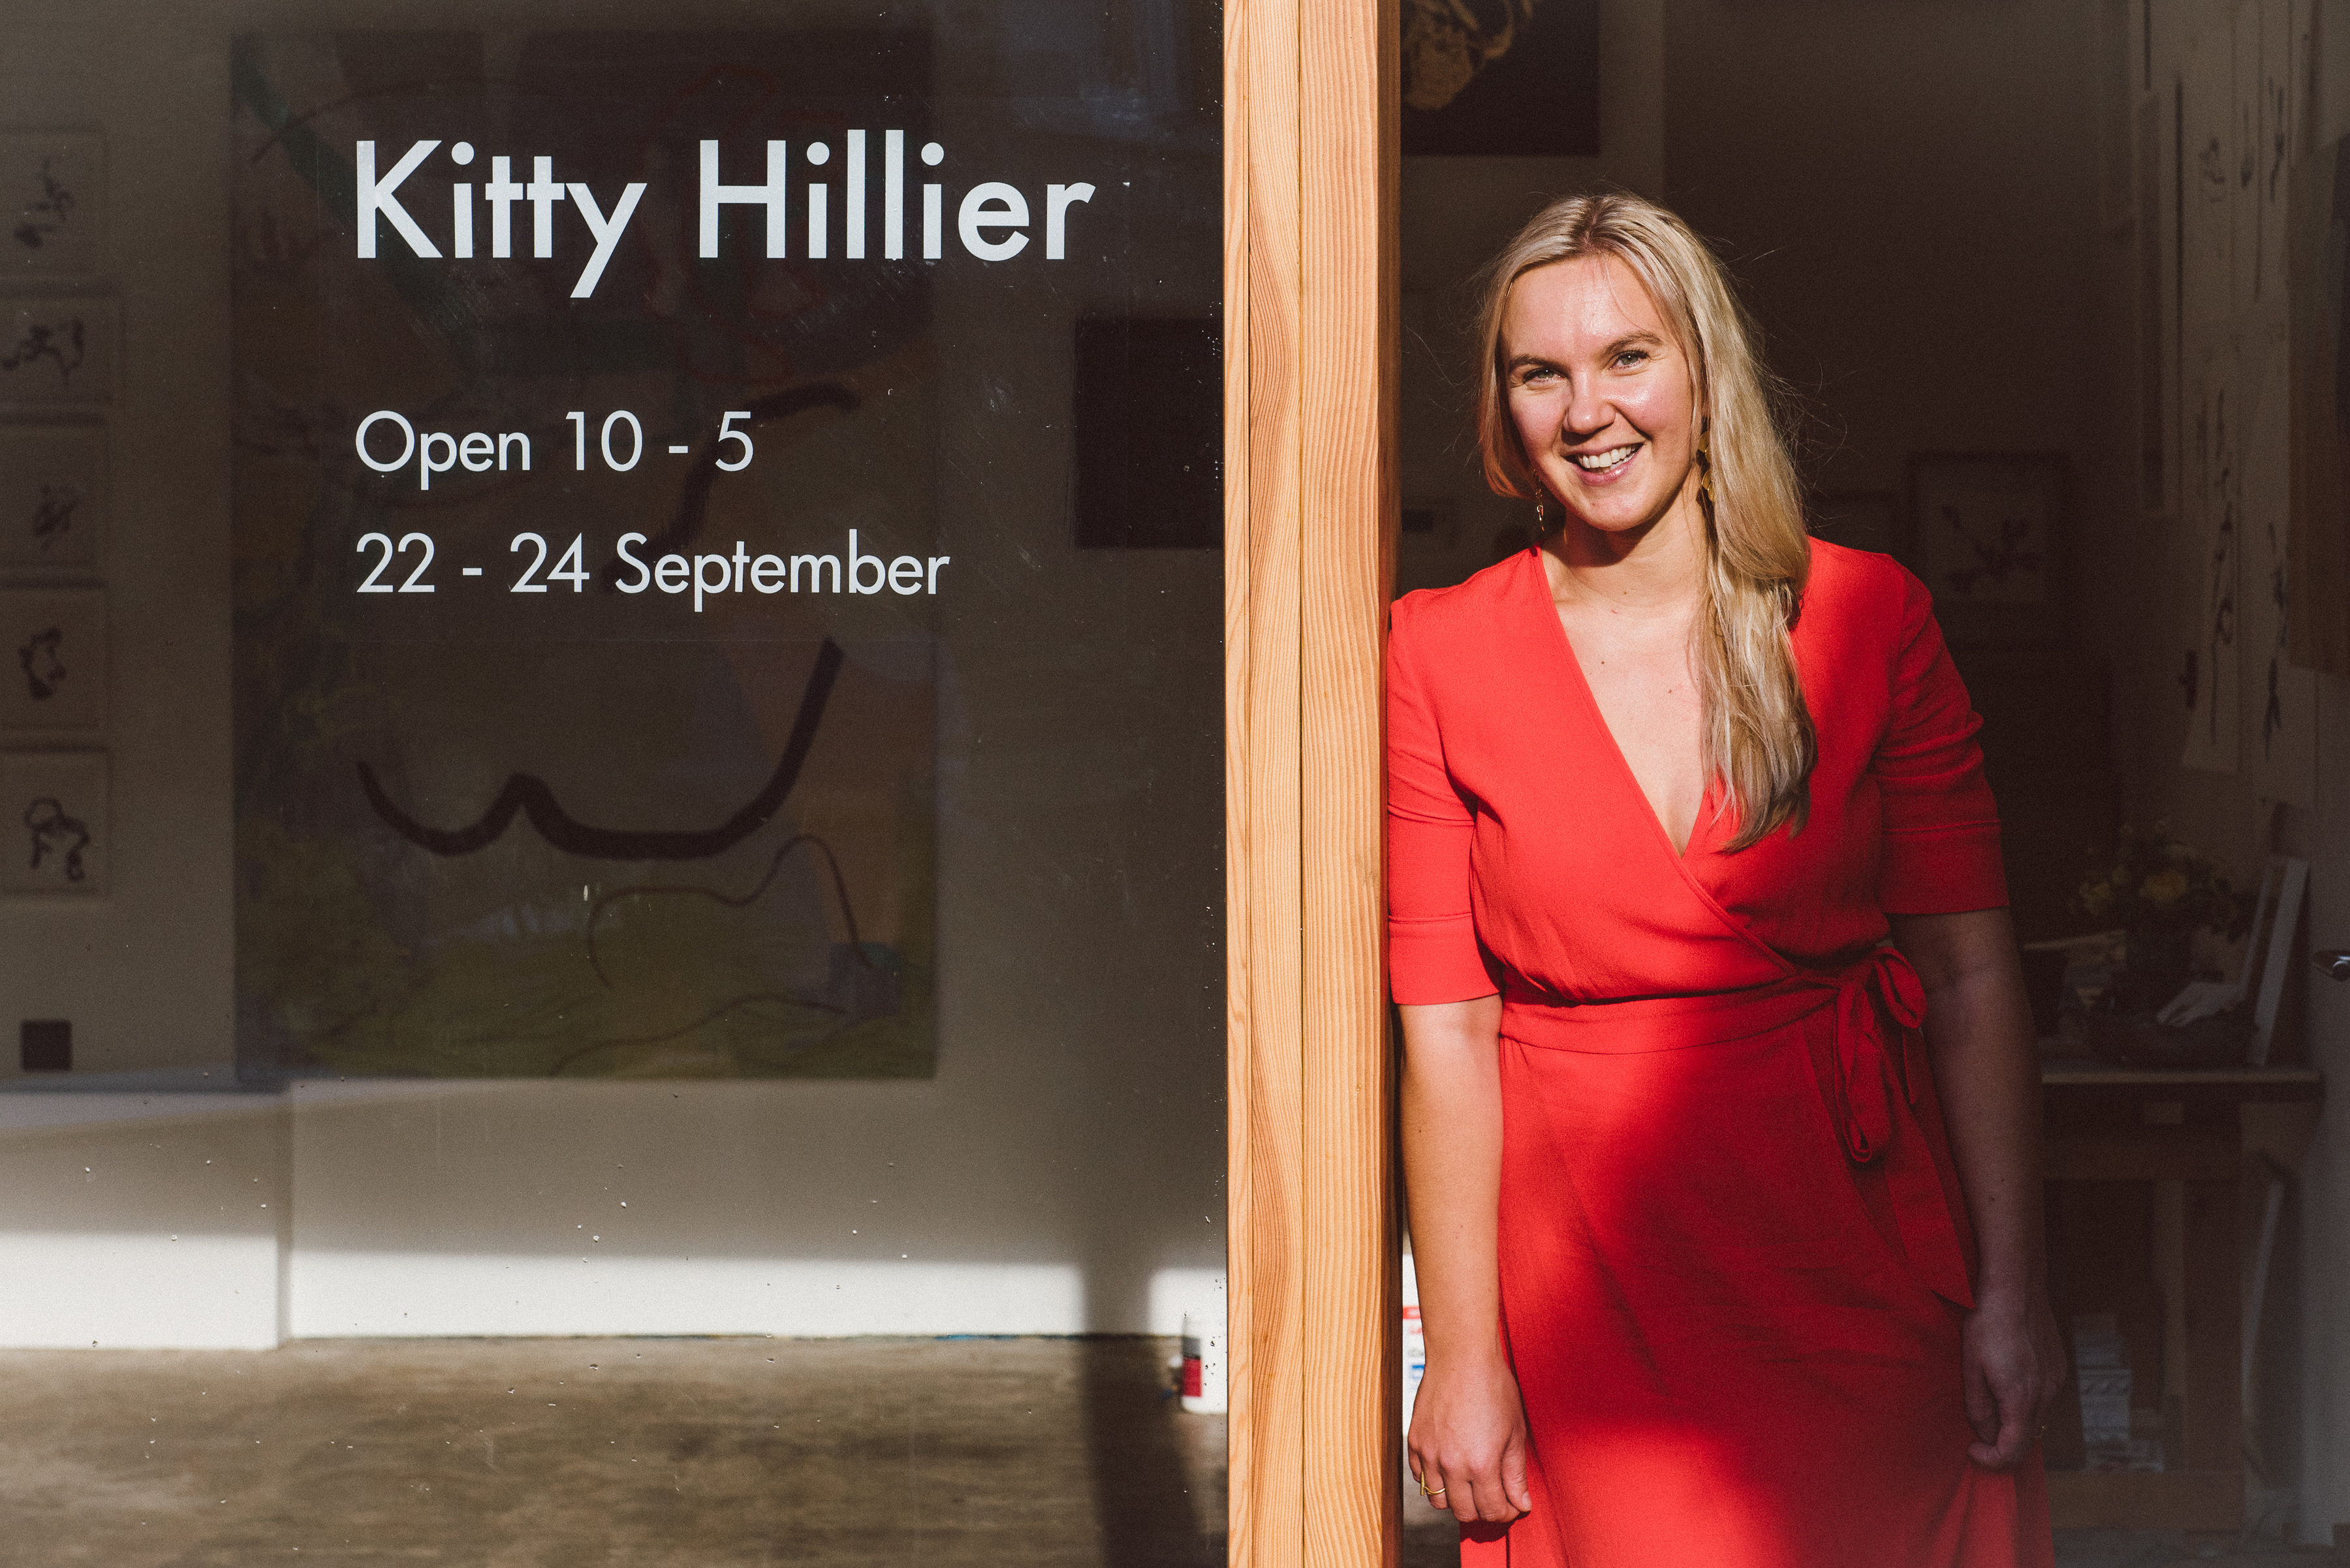 Kitty Hillier Artist Portrait